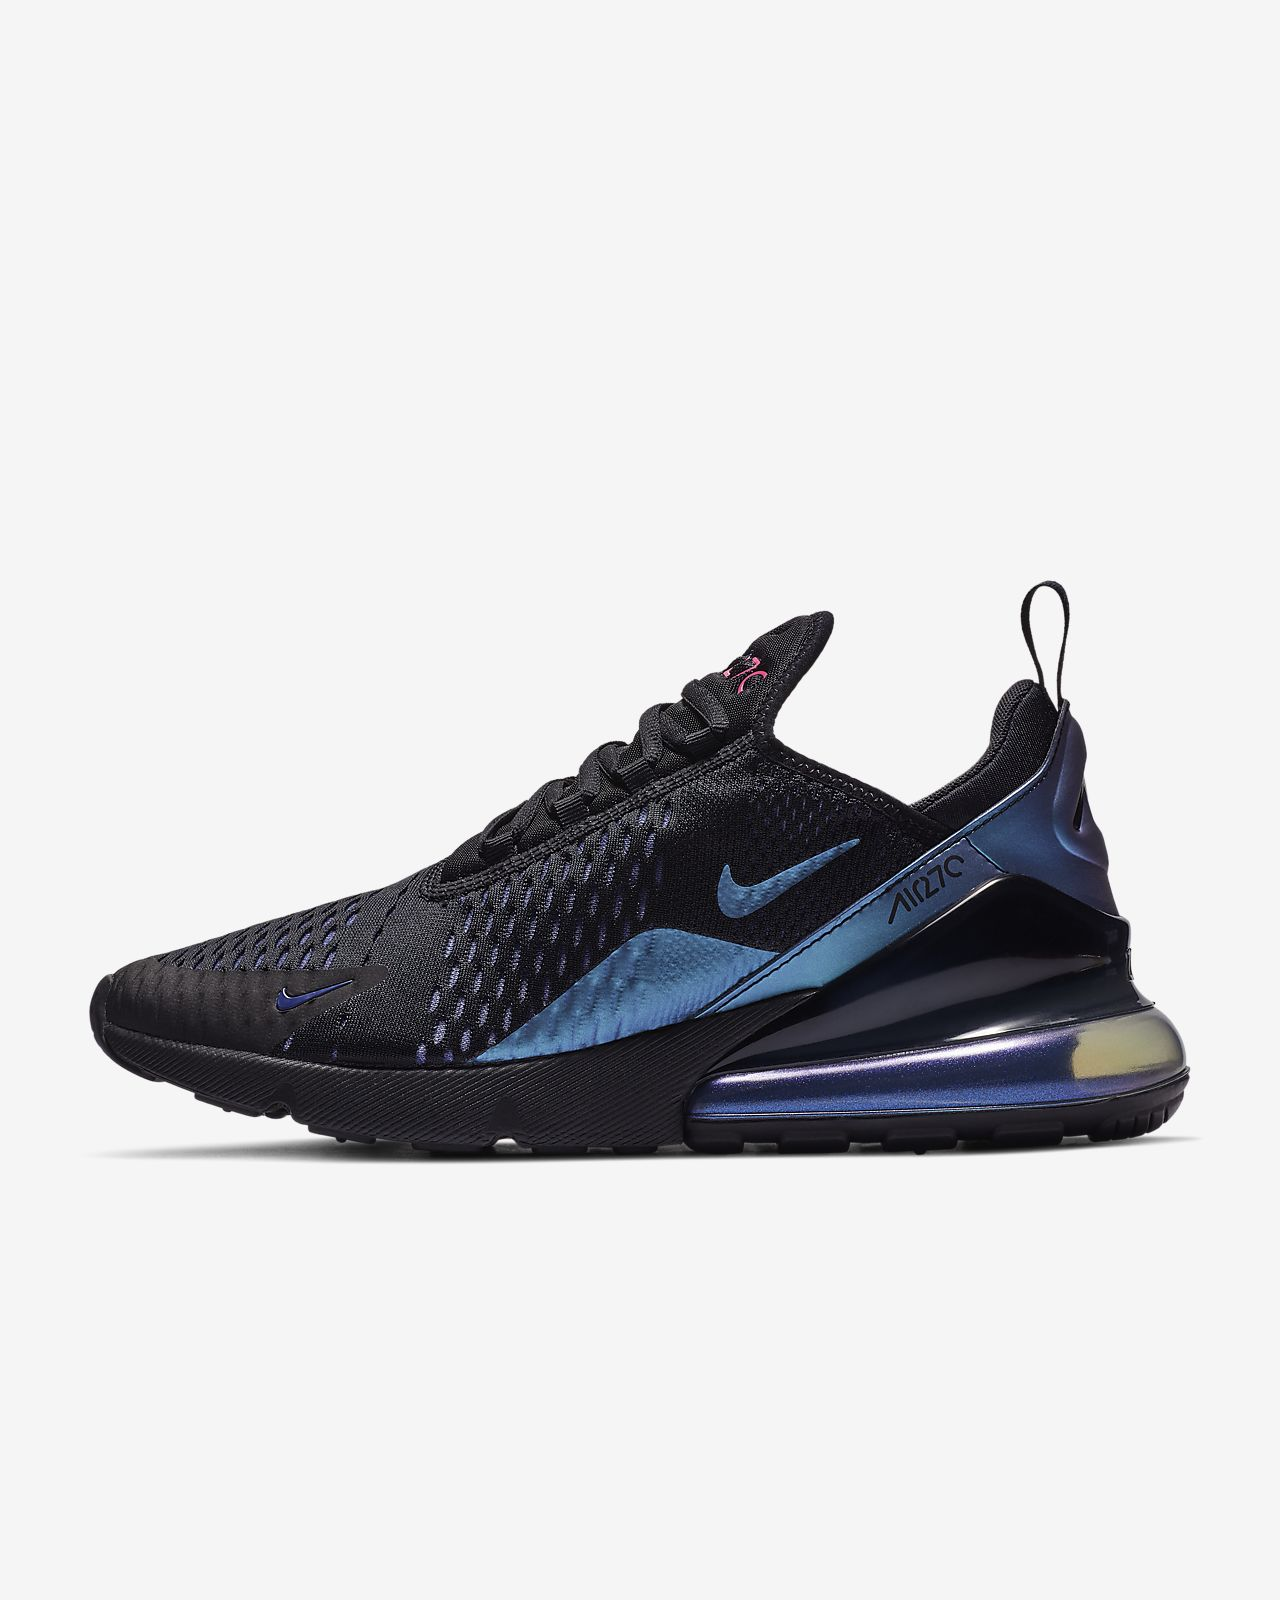 low priced 87358 1a5ec ... Buty męskie Nike Air Max 270